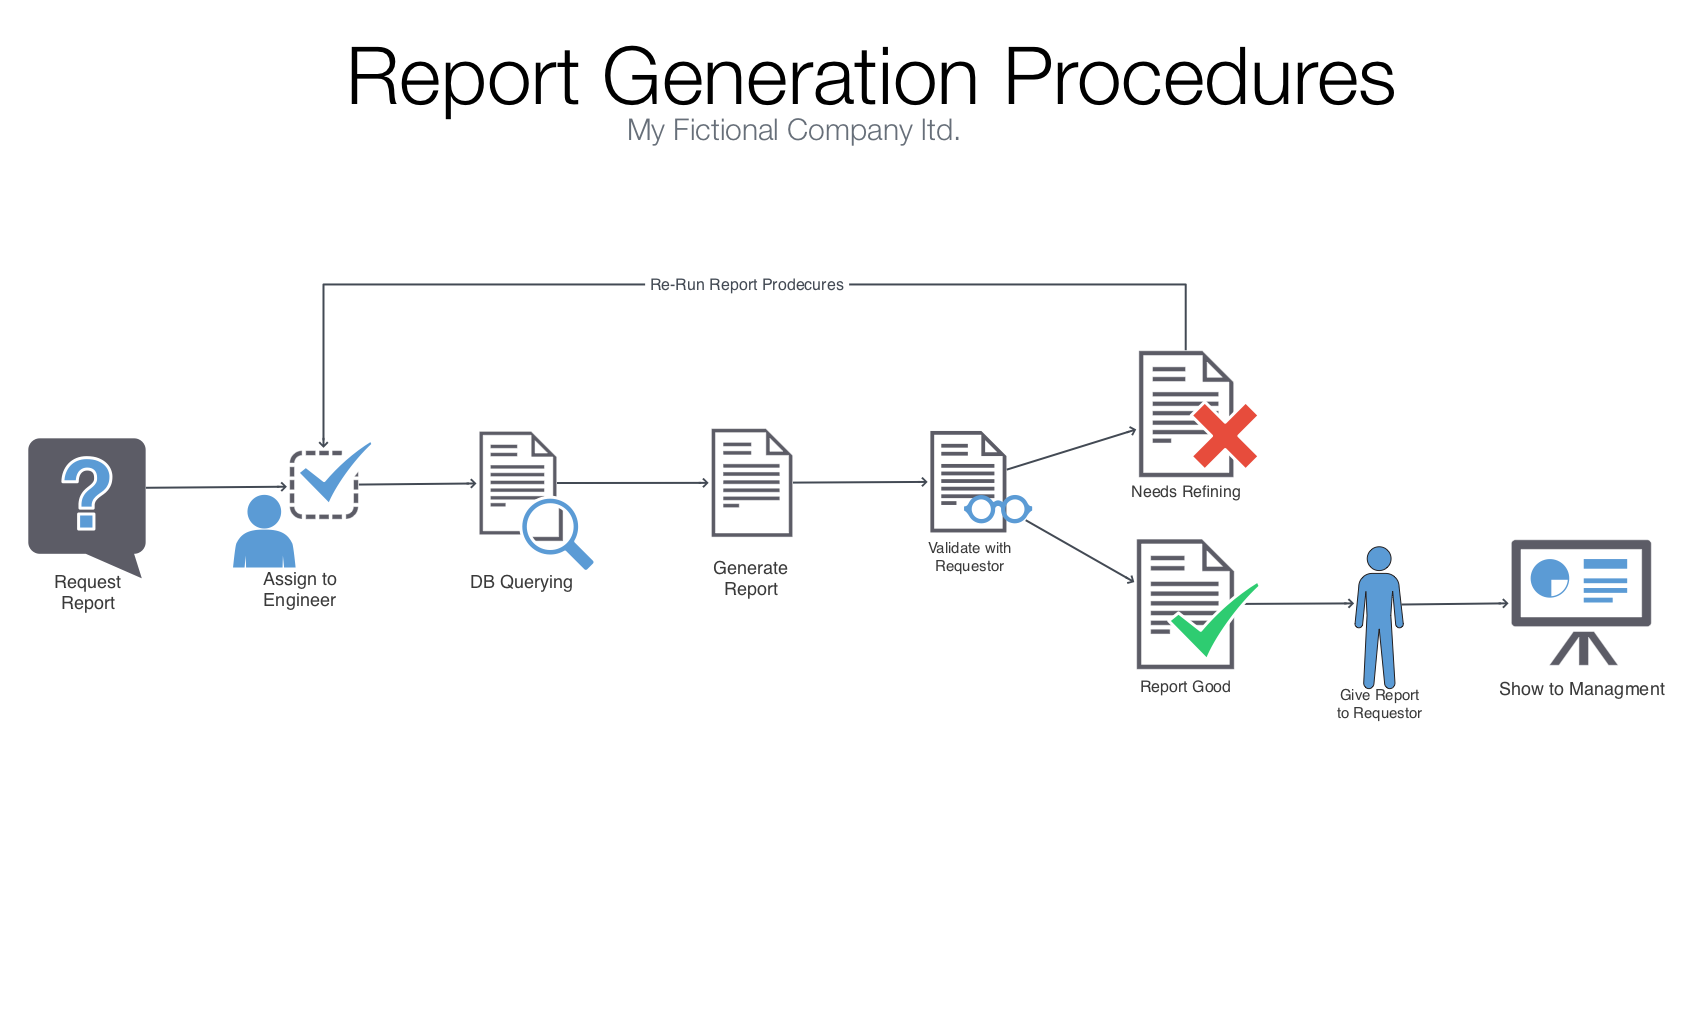 Workflow, Diagram, Ten Touch, Report Generation Procedures